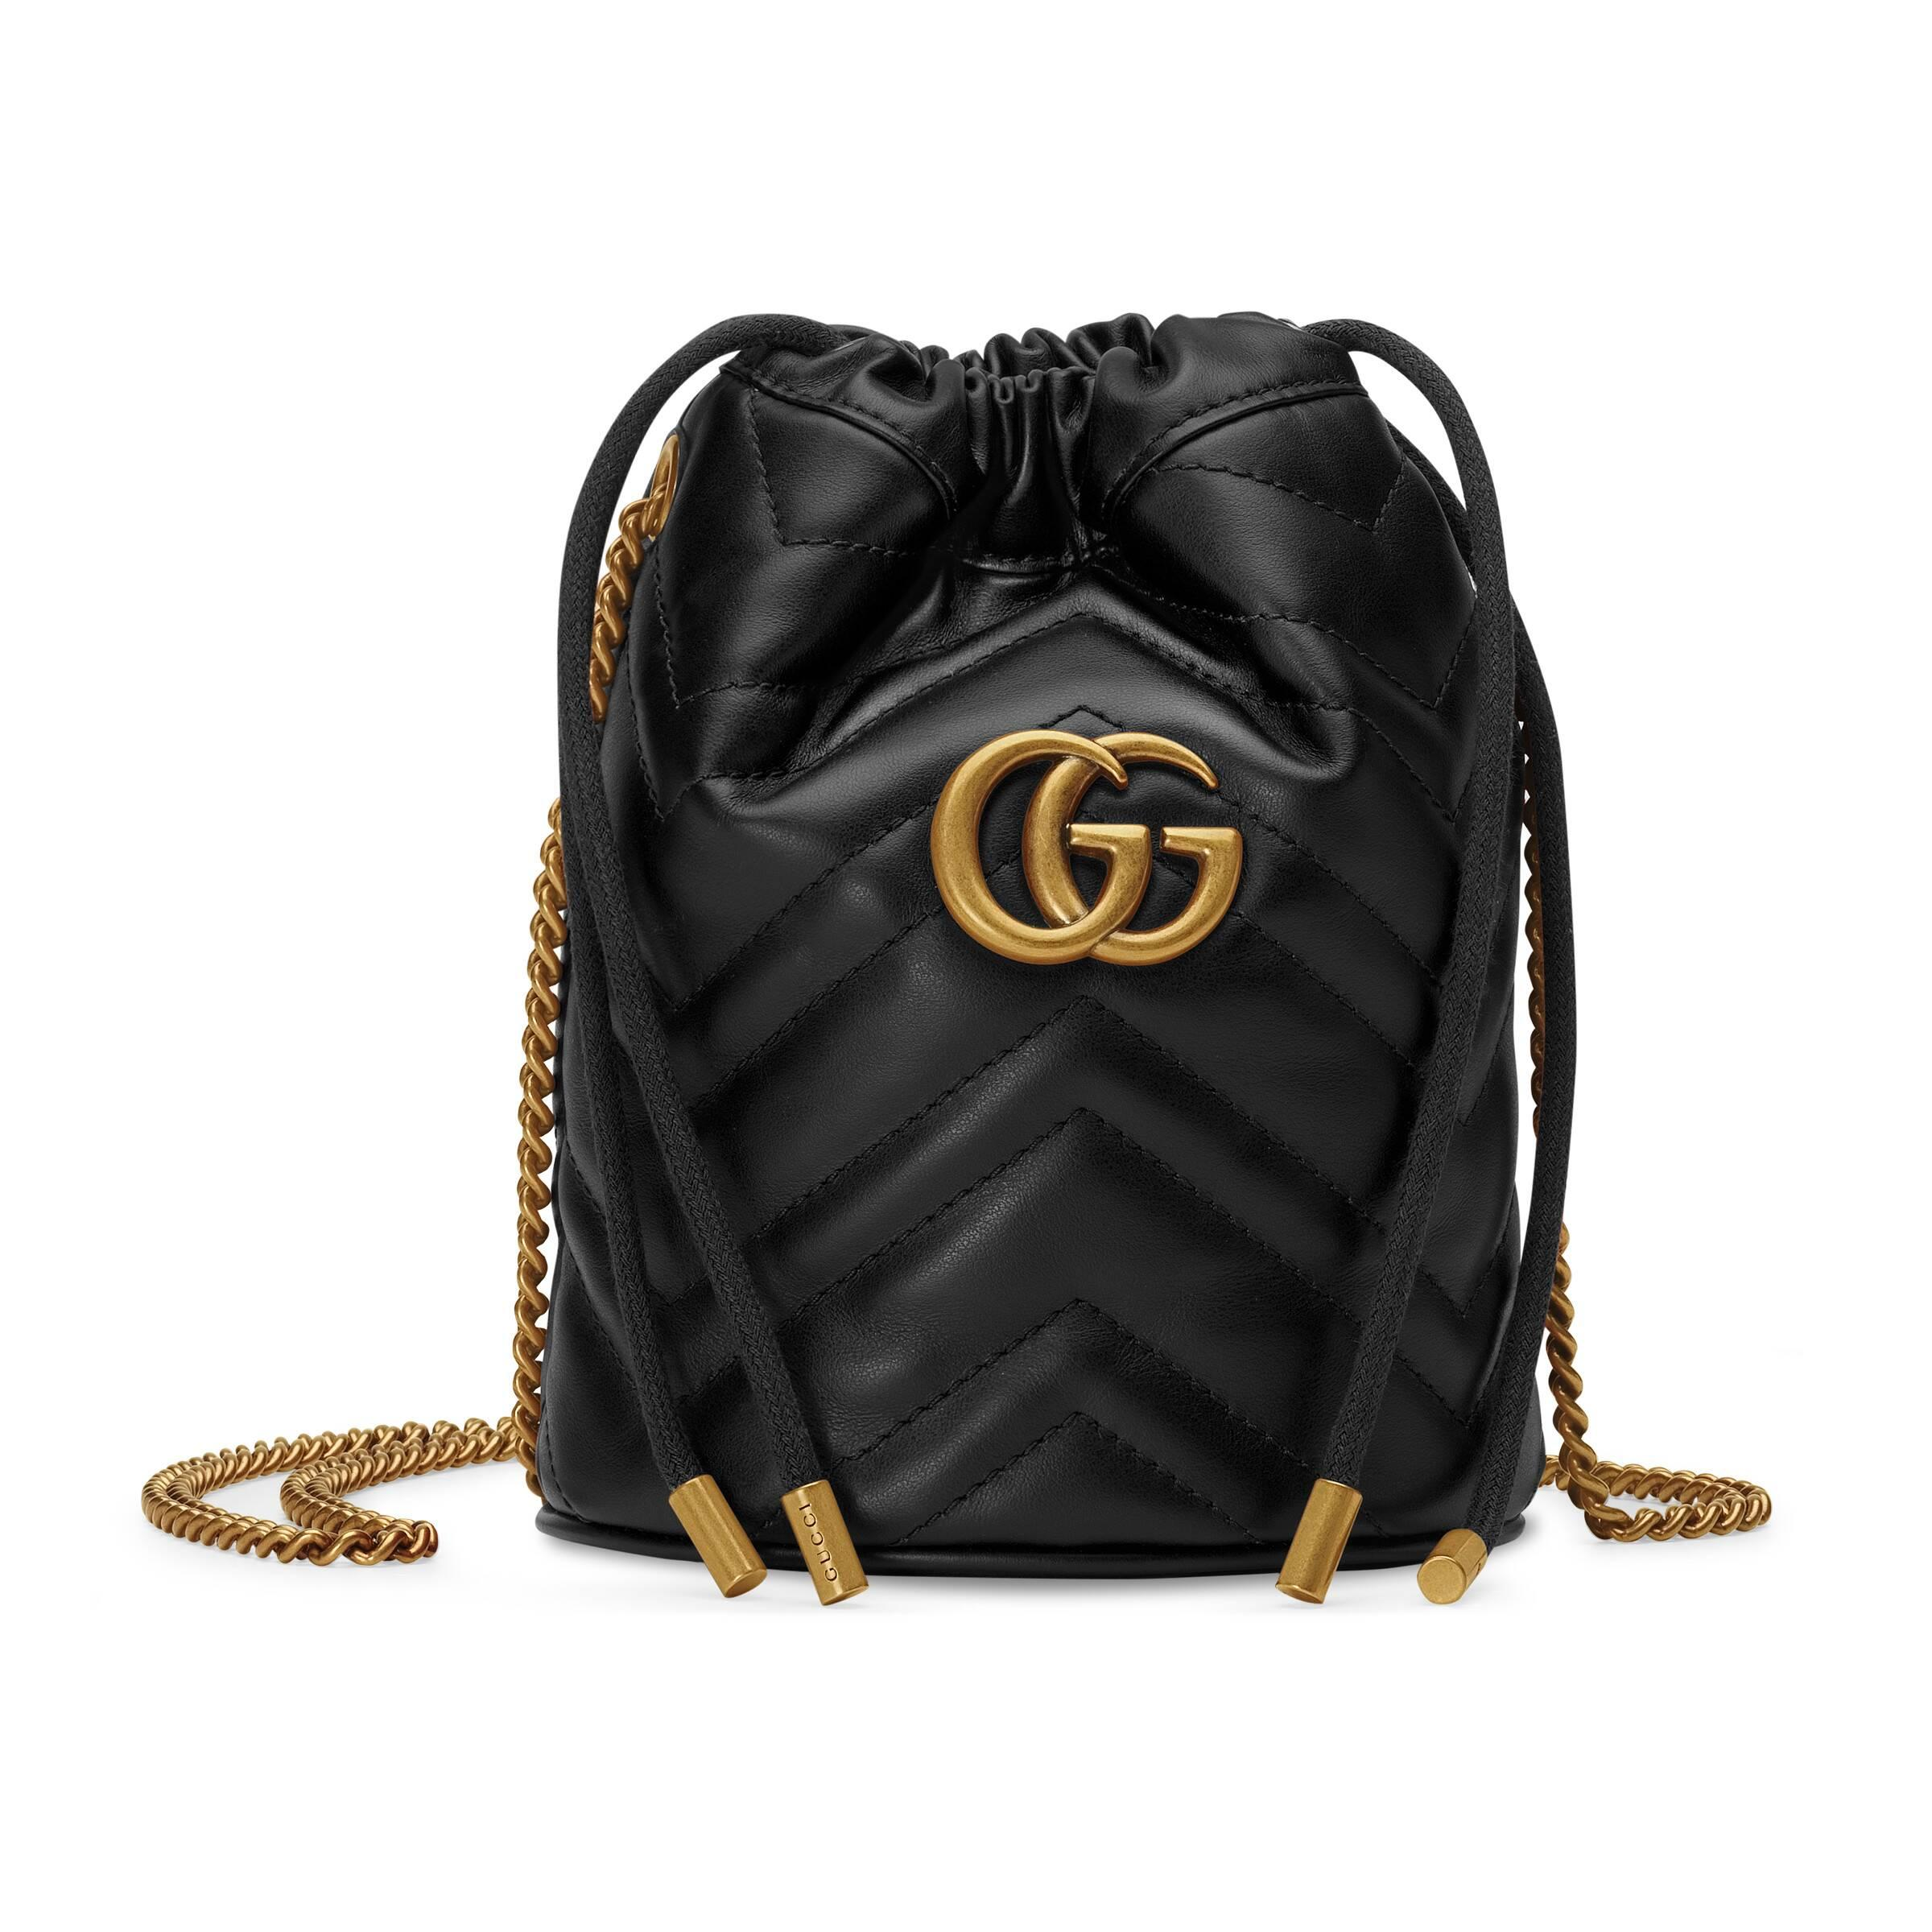 Negro Mujer Gg Color Minibolso Marmont Bombonera De D9EeHYIW2b